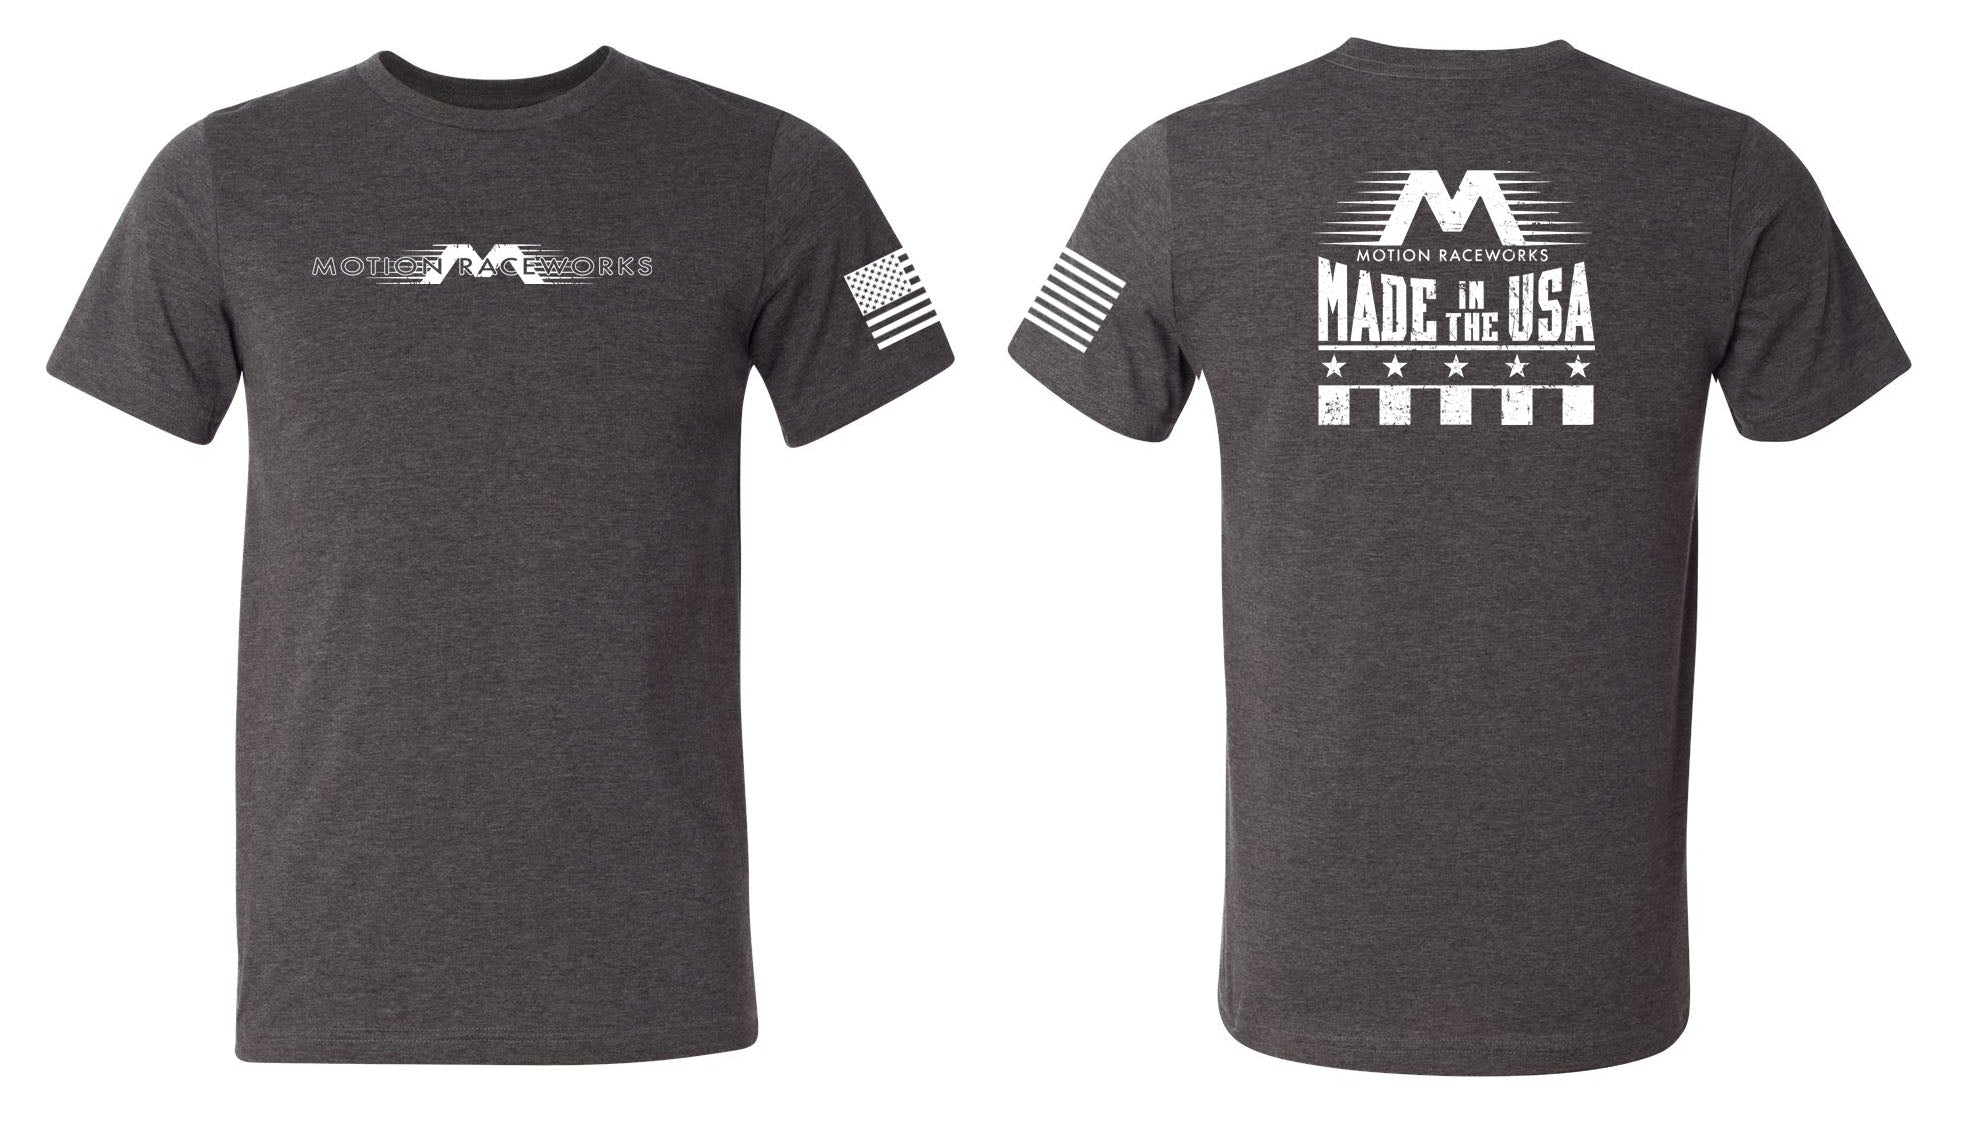 Made in the USA T-Shirt Sizes XS-4X-Motion Raceworks-Motion Raceworks